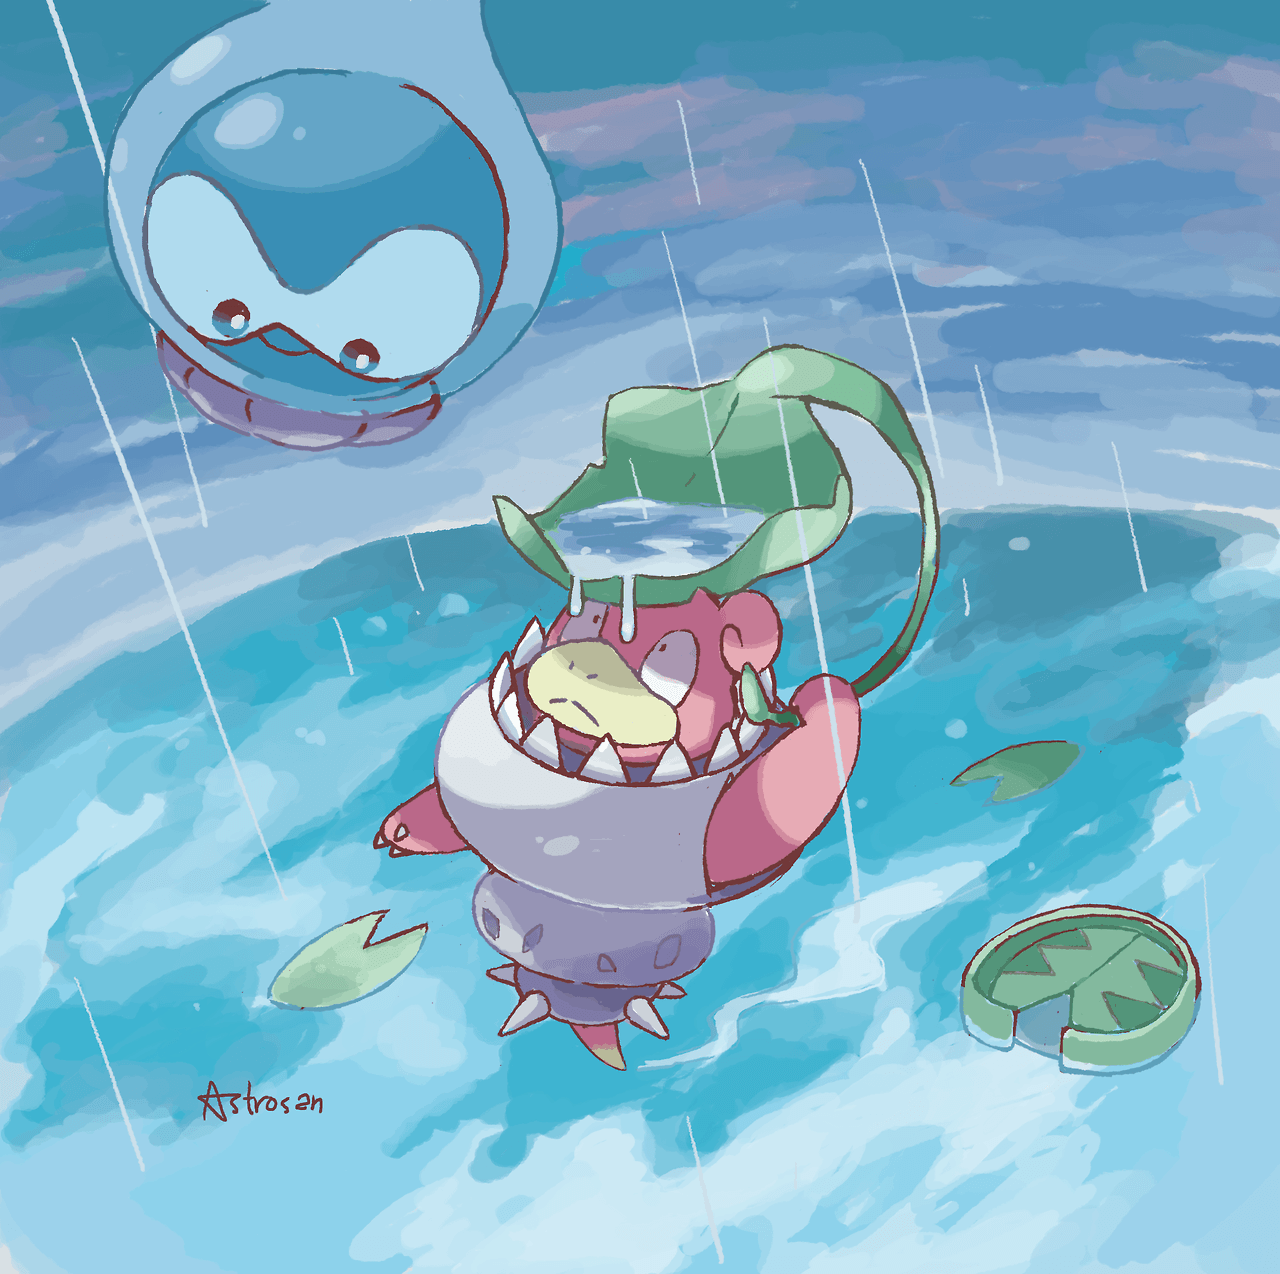 Mega Slowbro and Castform Fanart [Astrosan] : pokemon